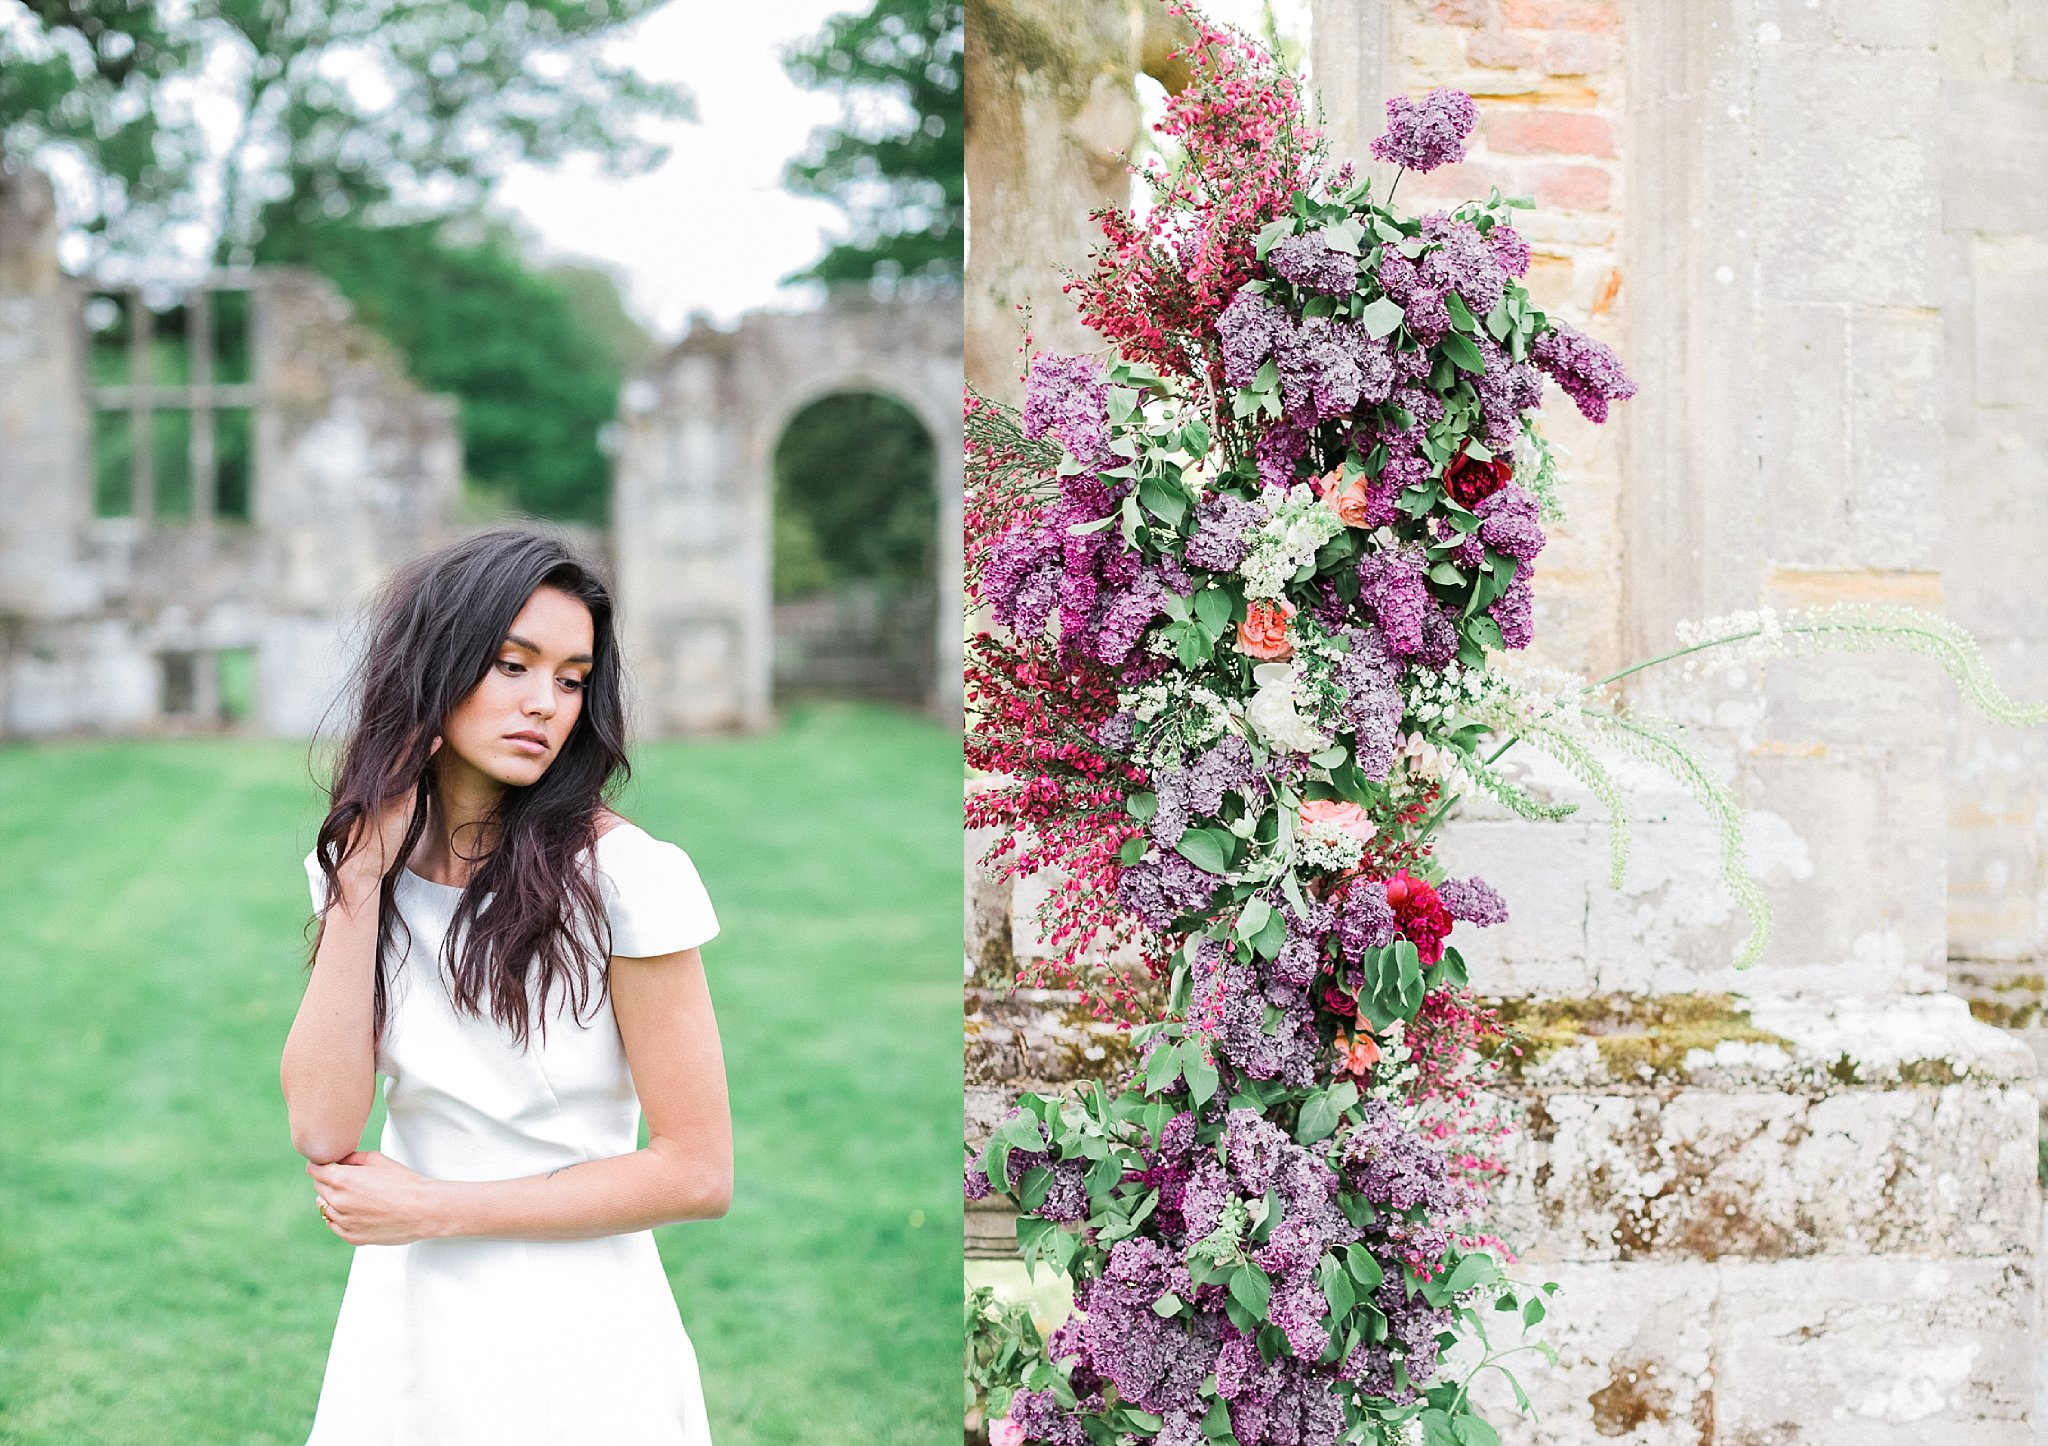 Destination Wedding Photographer,Fine Art Wedding Photographer,Kylee Yee,Kylee Yee Photography,London Wedding Photographer,Wedding and Portrait Photographer,